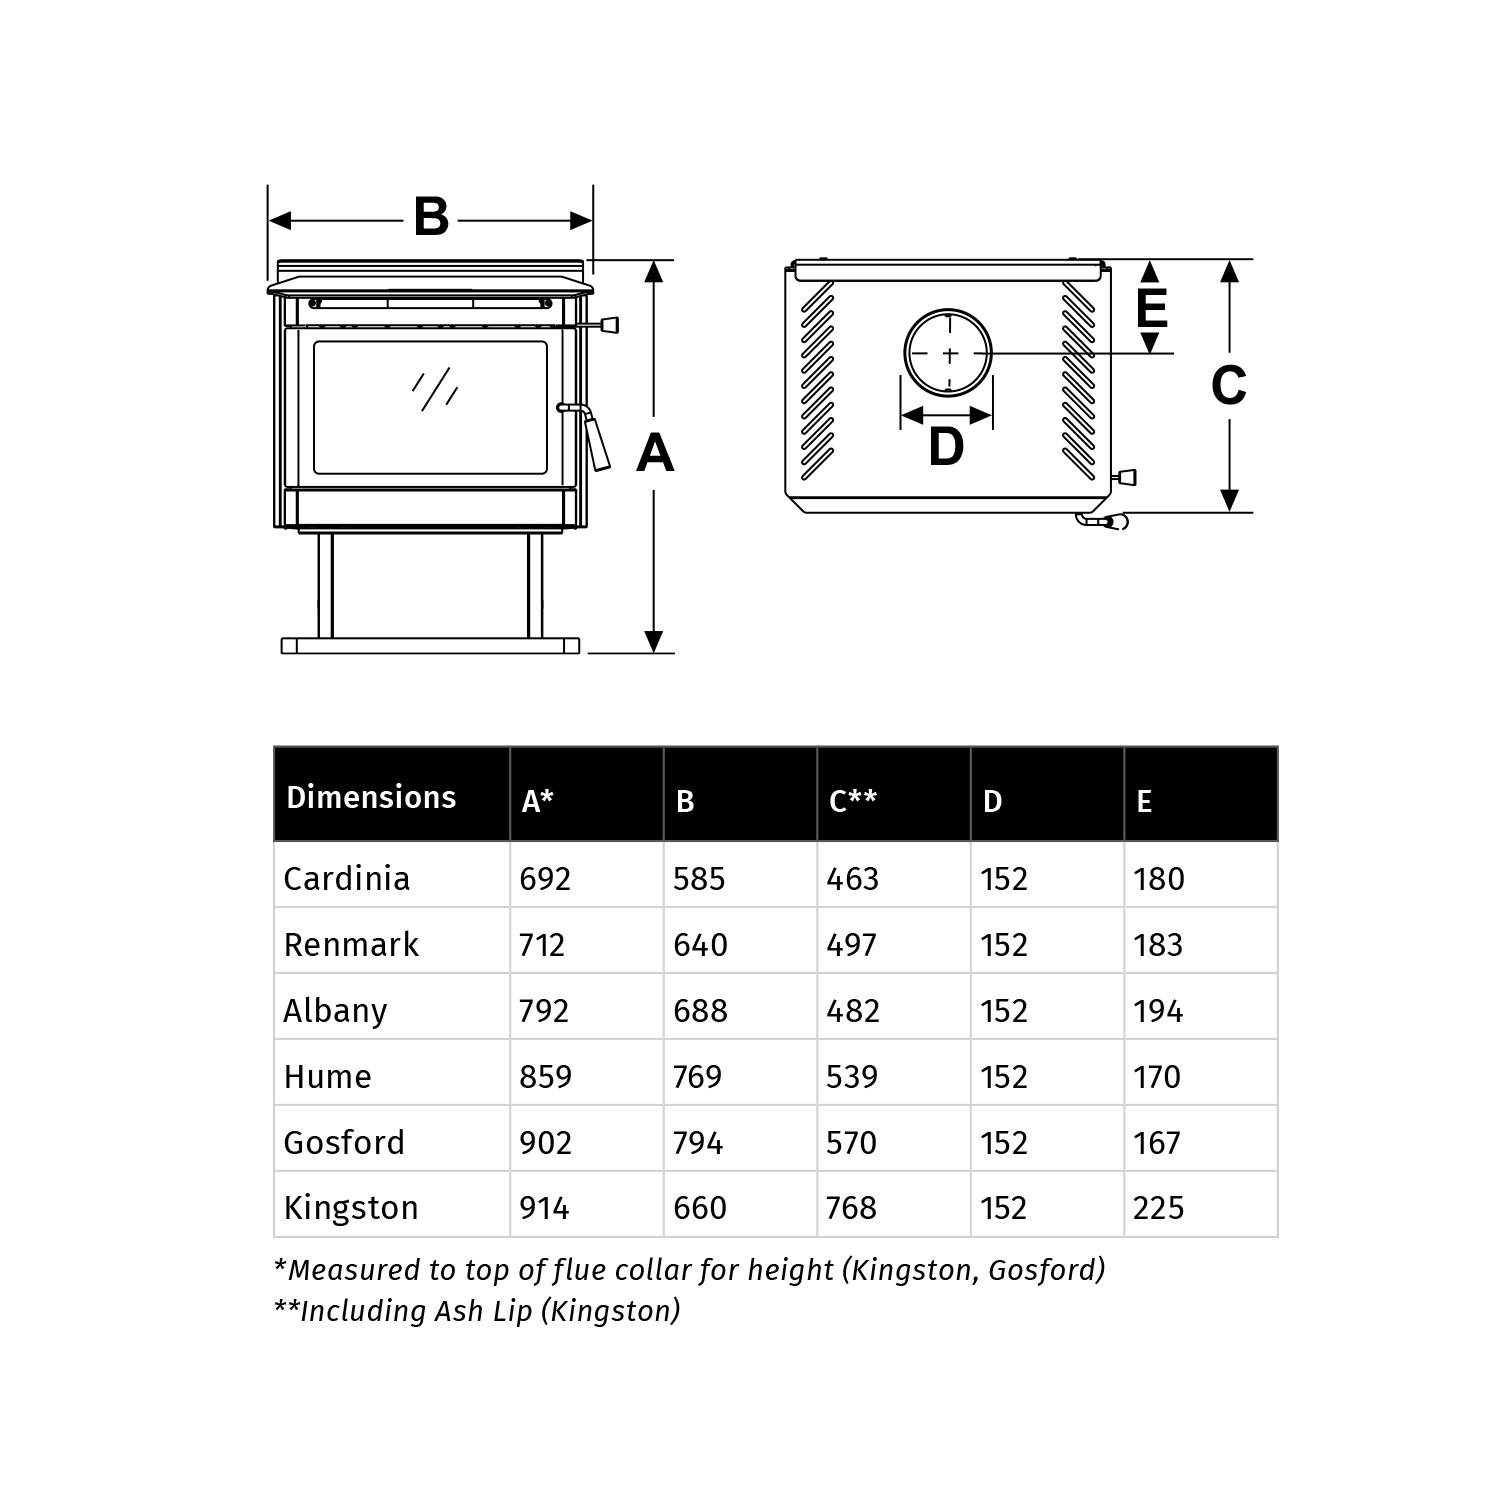 Regency cardinia, renmark, albany, hume, gosford and kingston wood heater dimensions